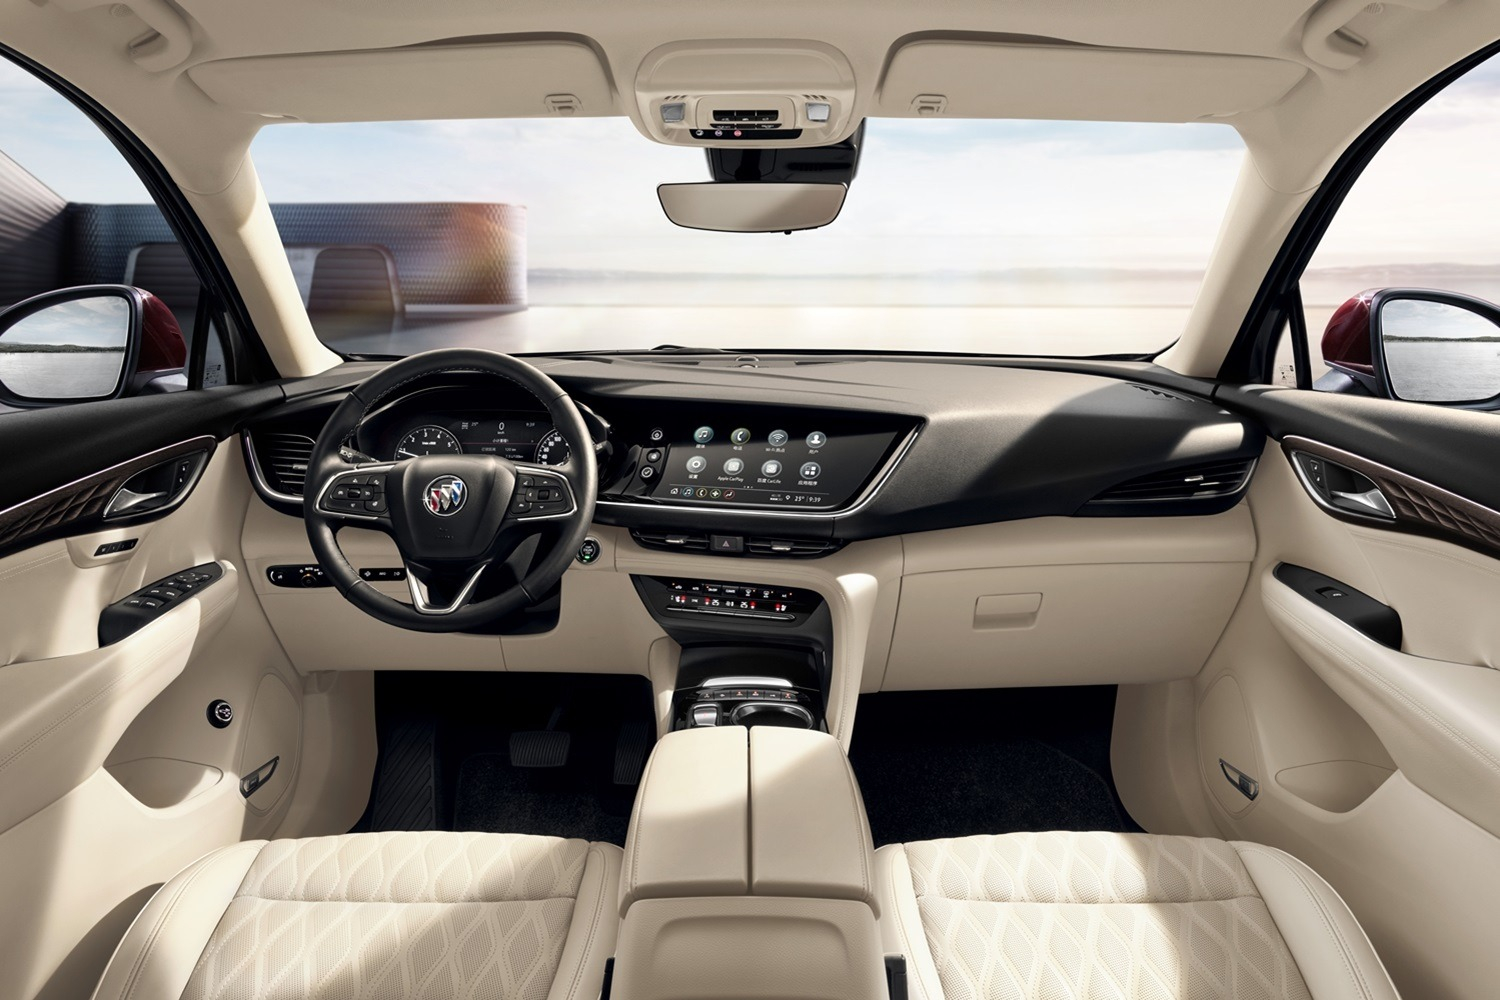 2021 Buick Envision Info, Specs, Wiki | Gm Authority 2021 Buick Envision Specs, Price, Interior